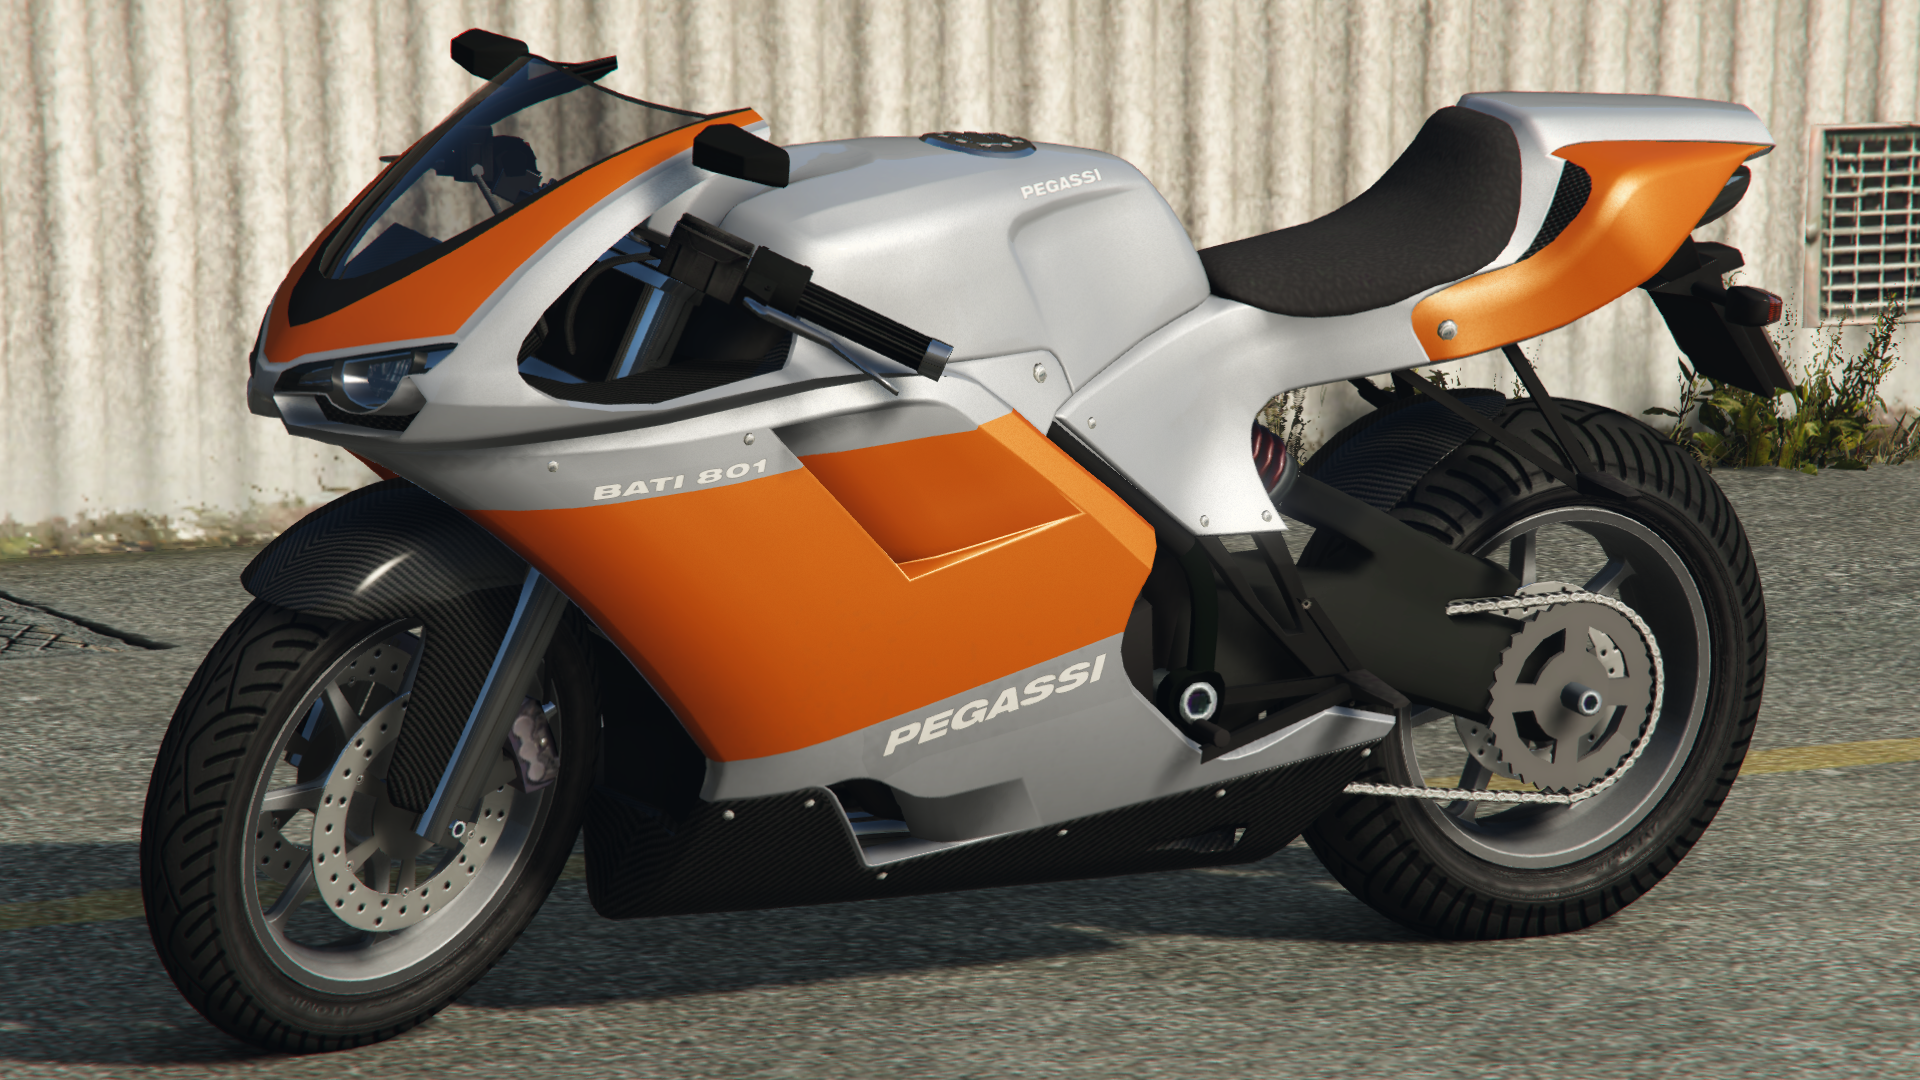 Bati 801 | GTA Wiki | FANDOM powered by Wikia